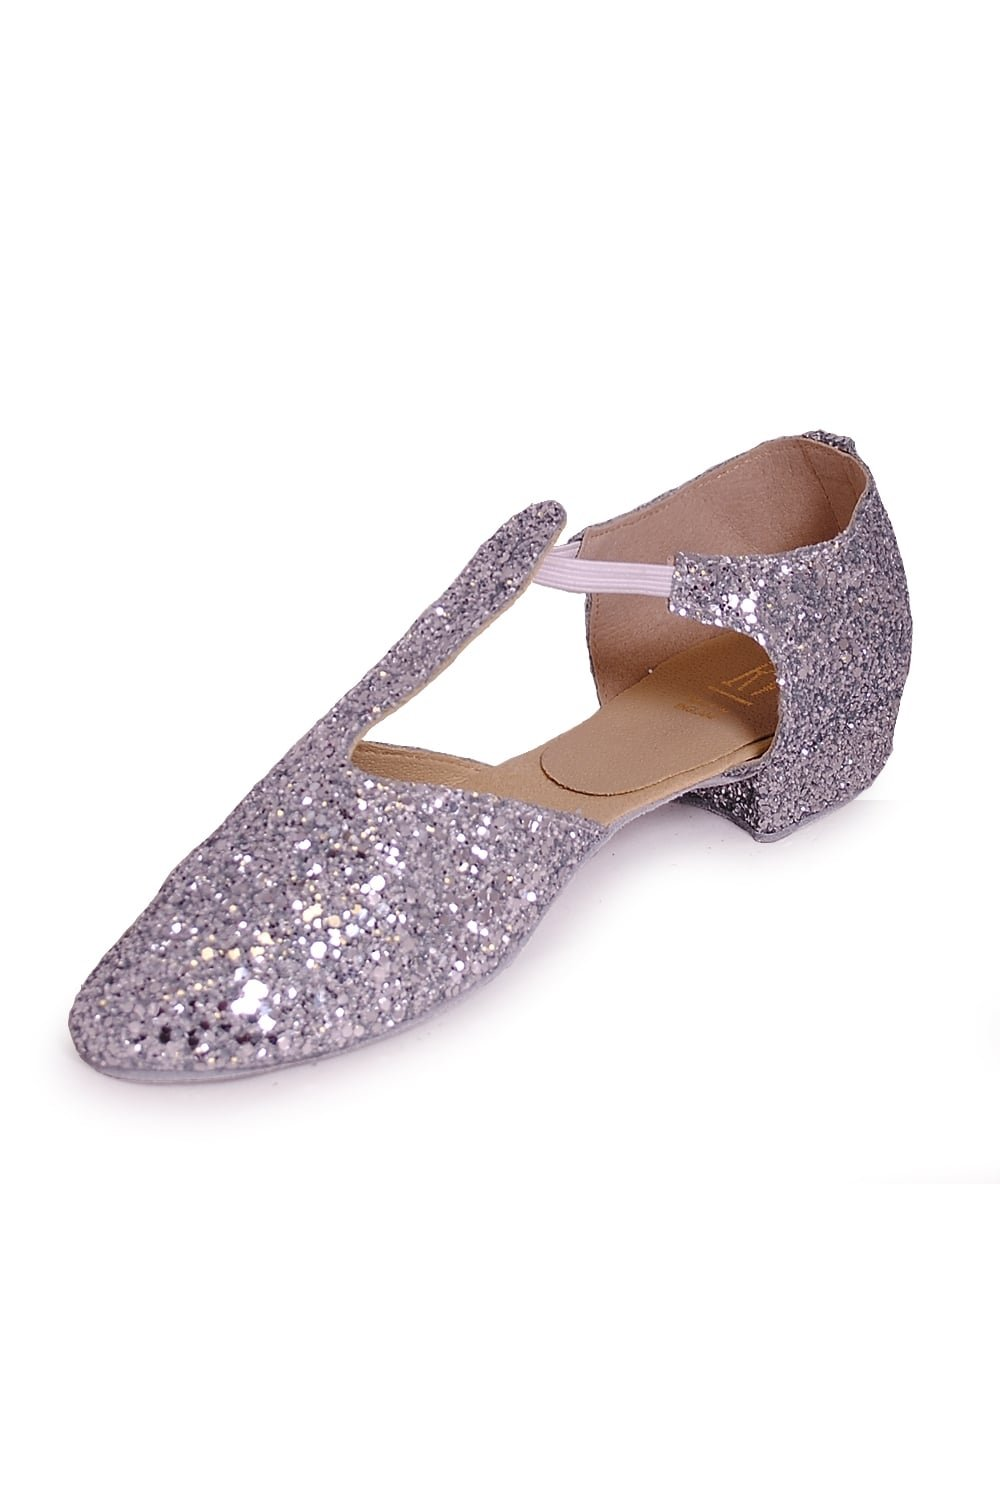 41bf77388dcb Roch Valley Glitter Greek Sandals with Suede Sole  Amazon.co.uk  Sports    Outdoors